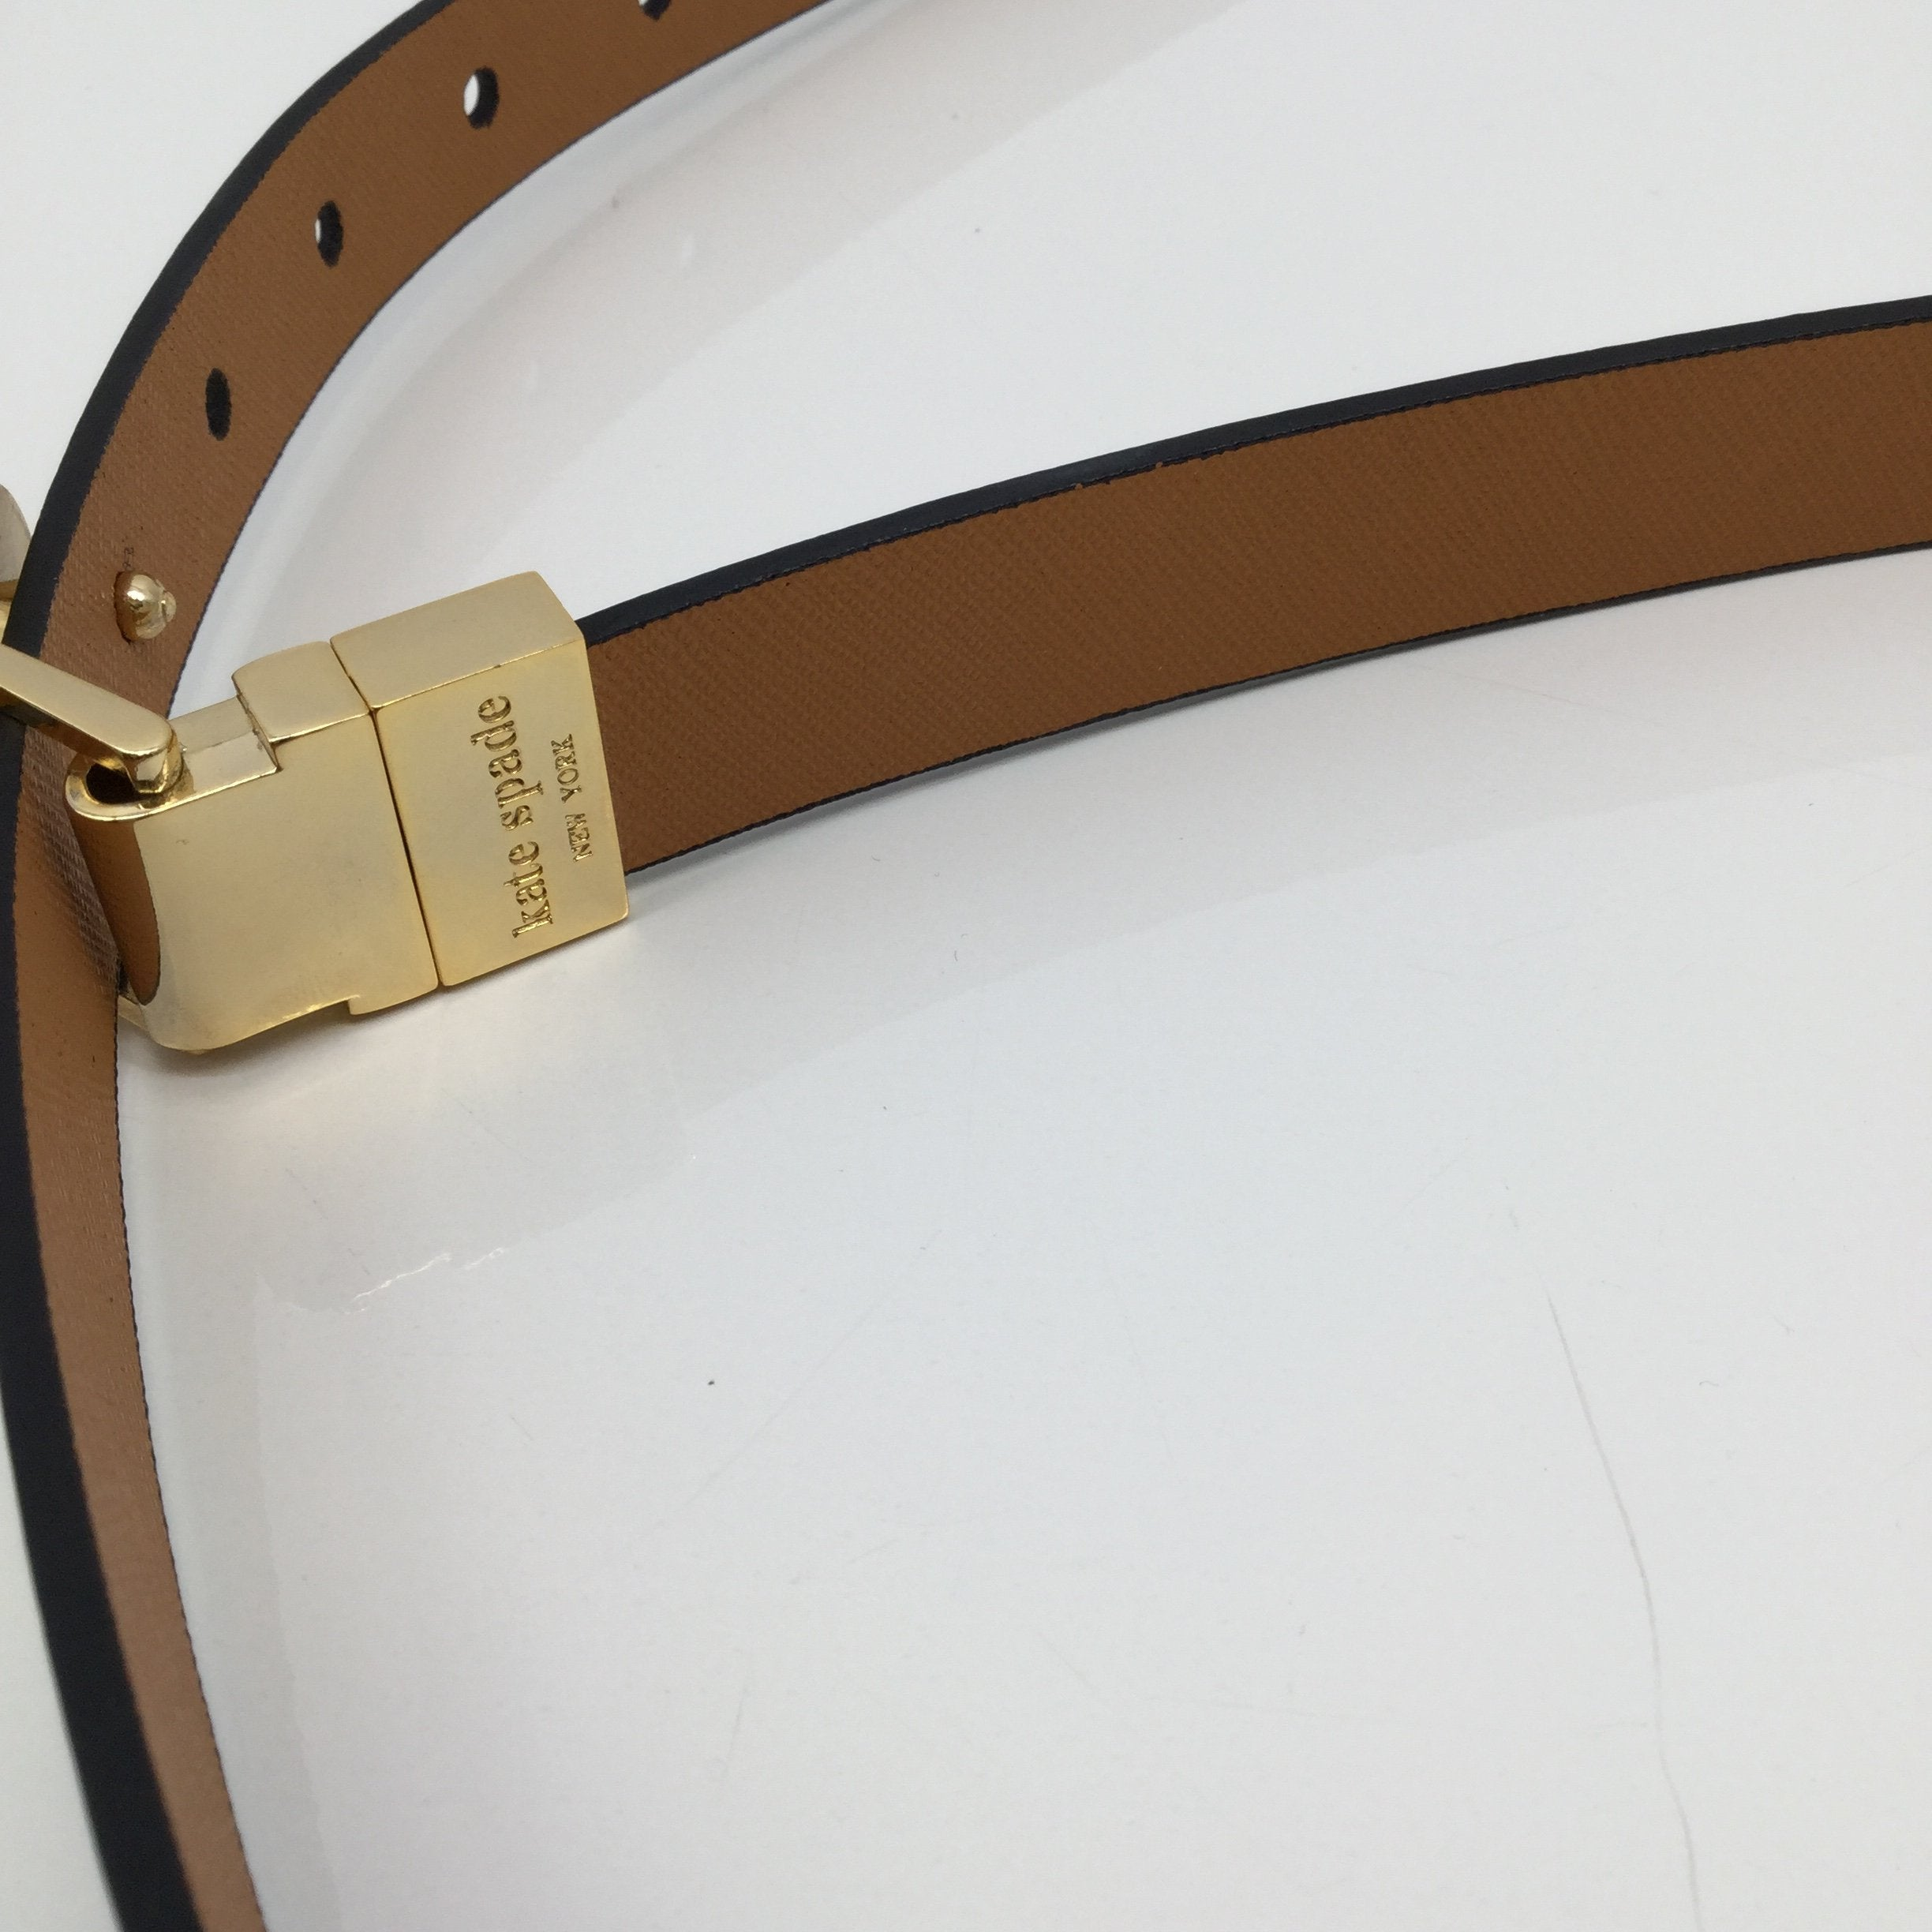 Kate Spade Belt Size Large - <P>VERY GREAT CONDITION ADJUSTABLE GOLD KATE SPADE BELT. MAKE IT YOURS TODAY FOR ONLY $25</P>